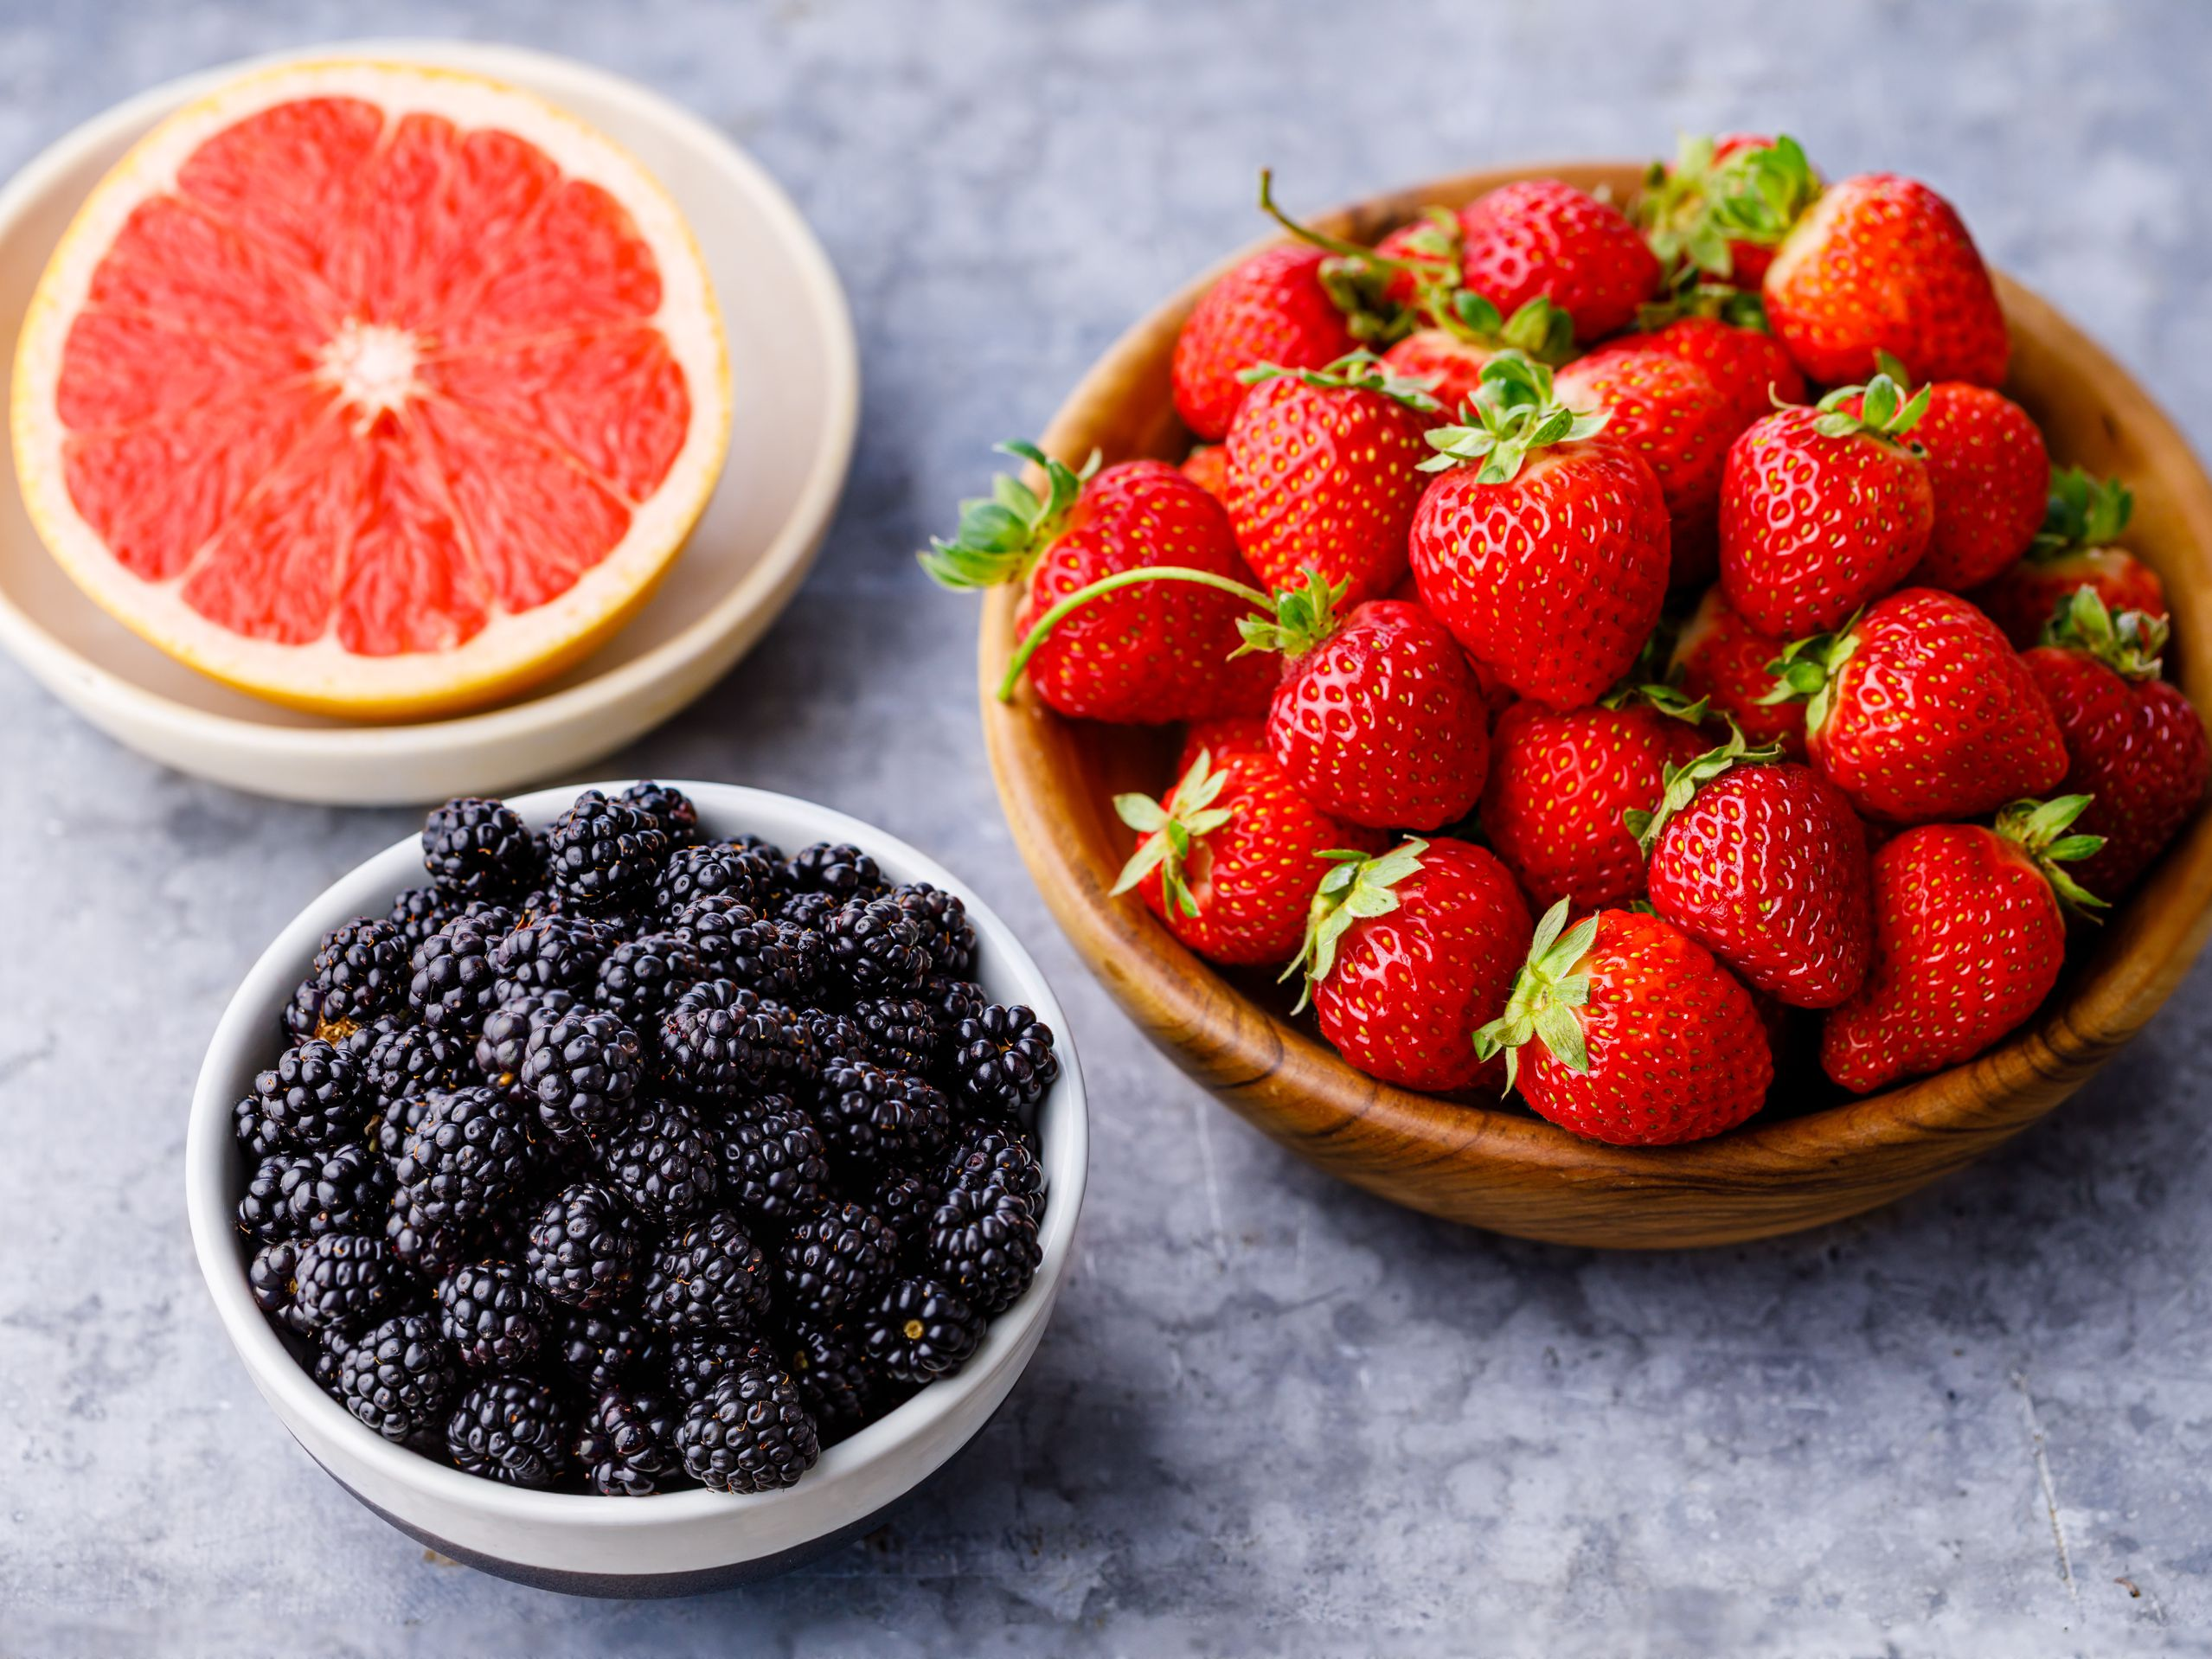 does an all-fruit diet leads to diabetes